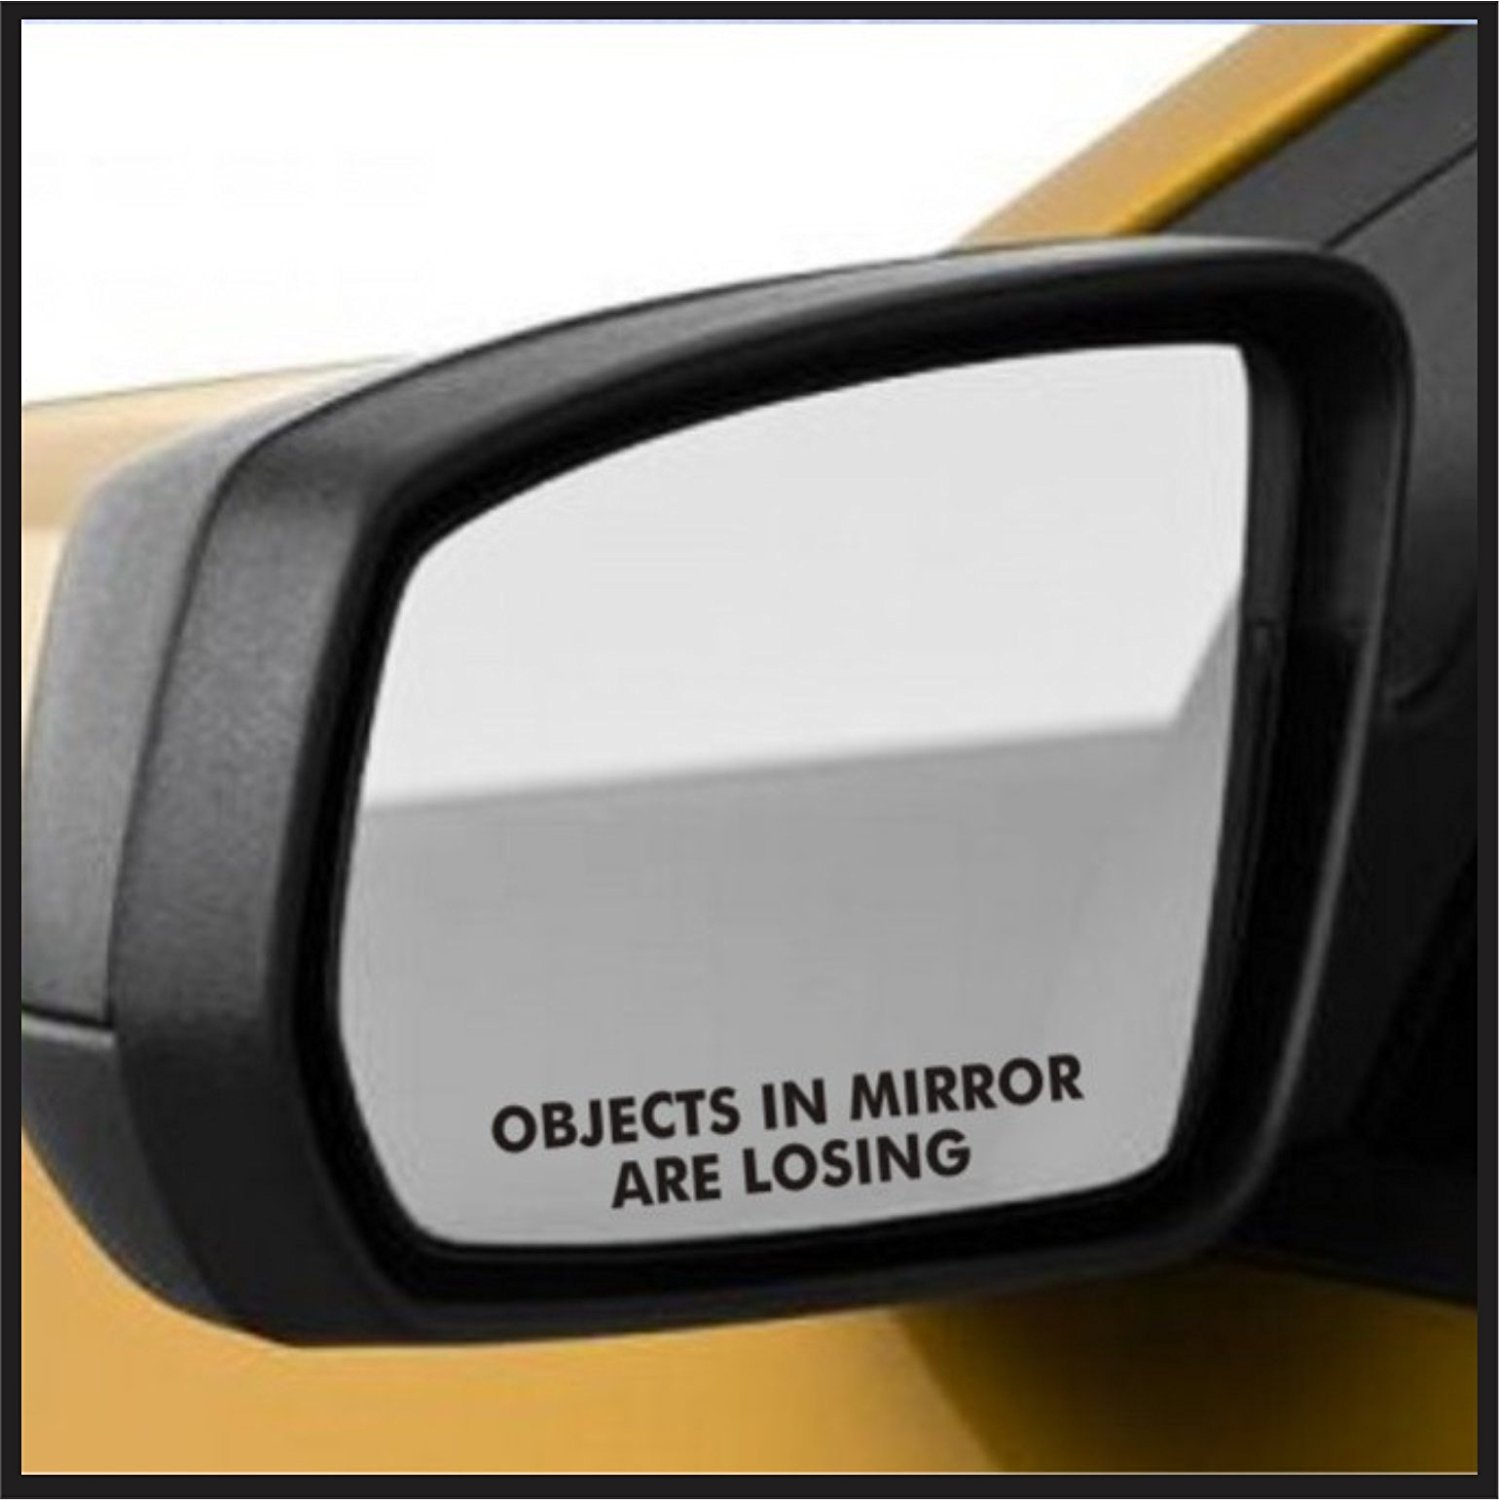 Objects in mirror are losing rear view mirror decal